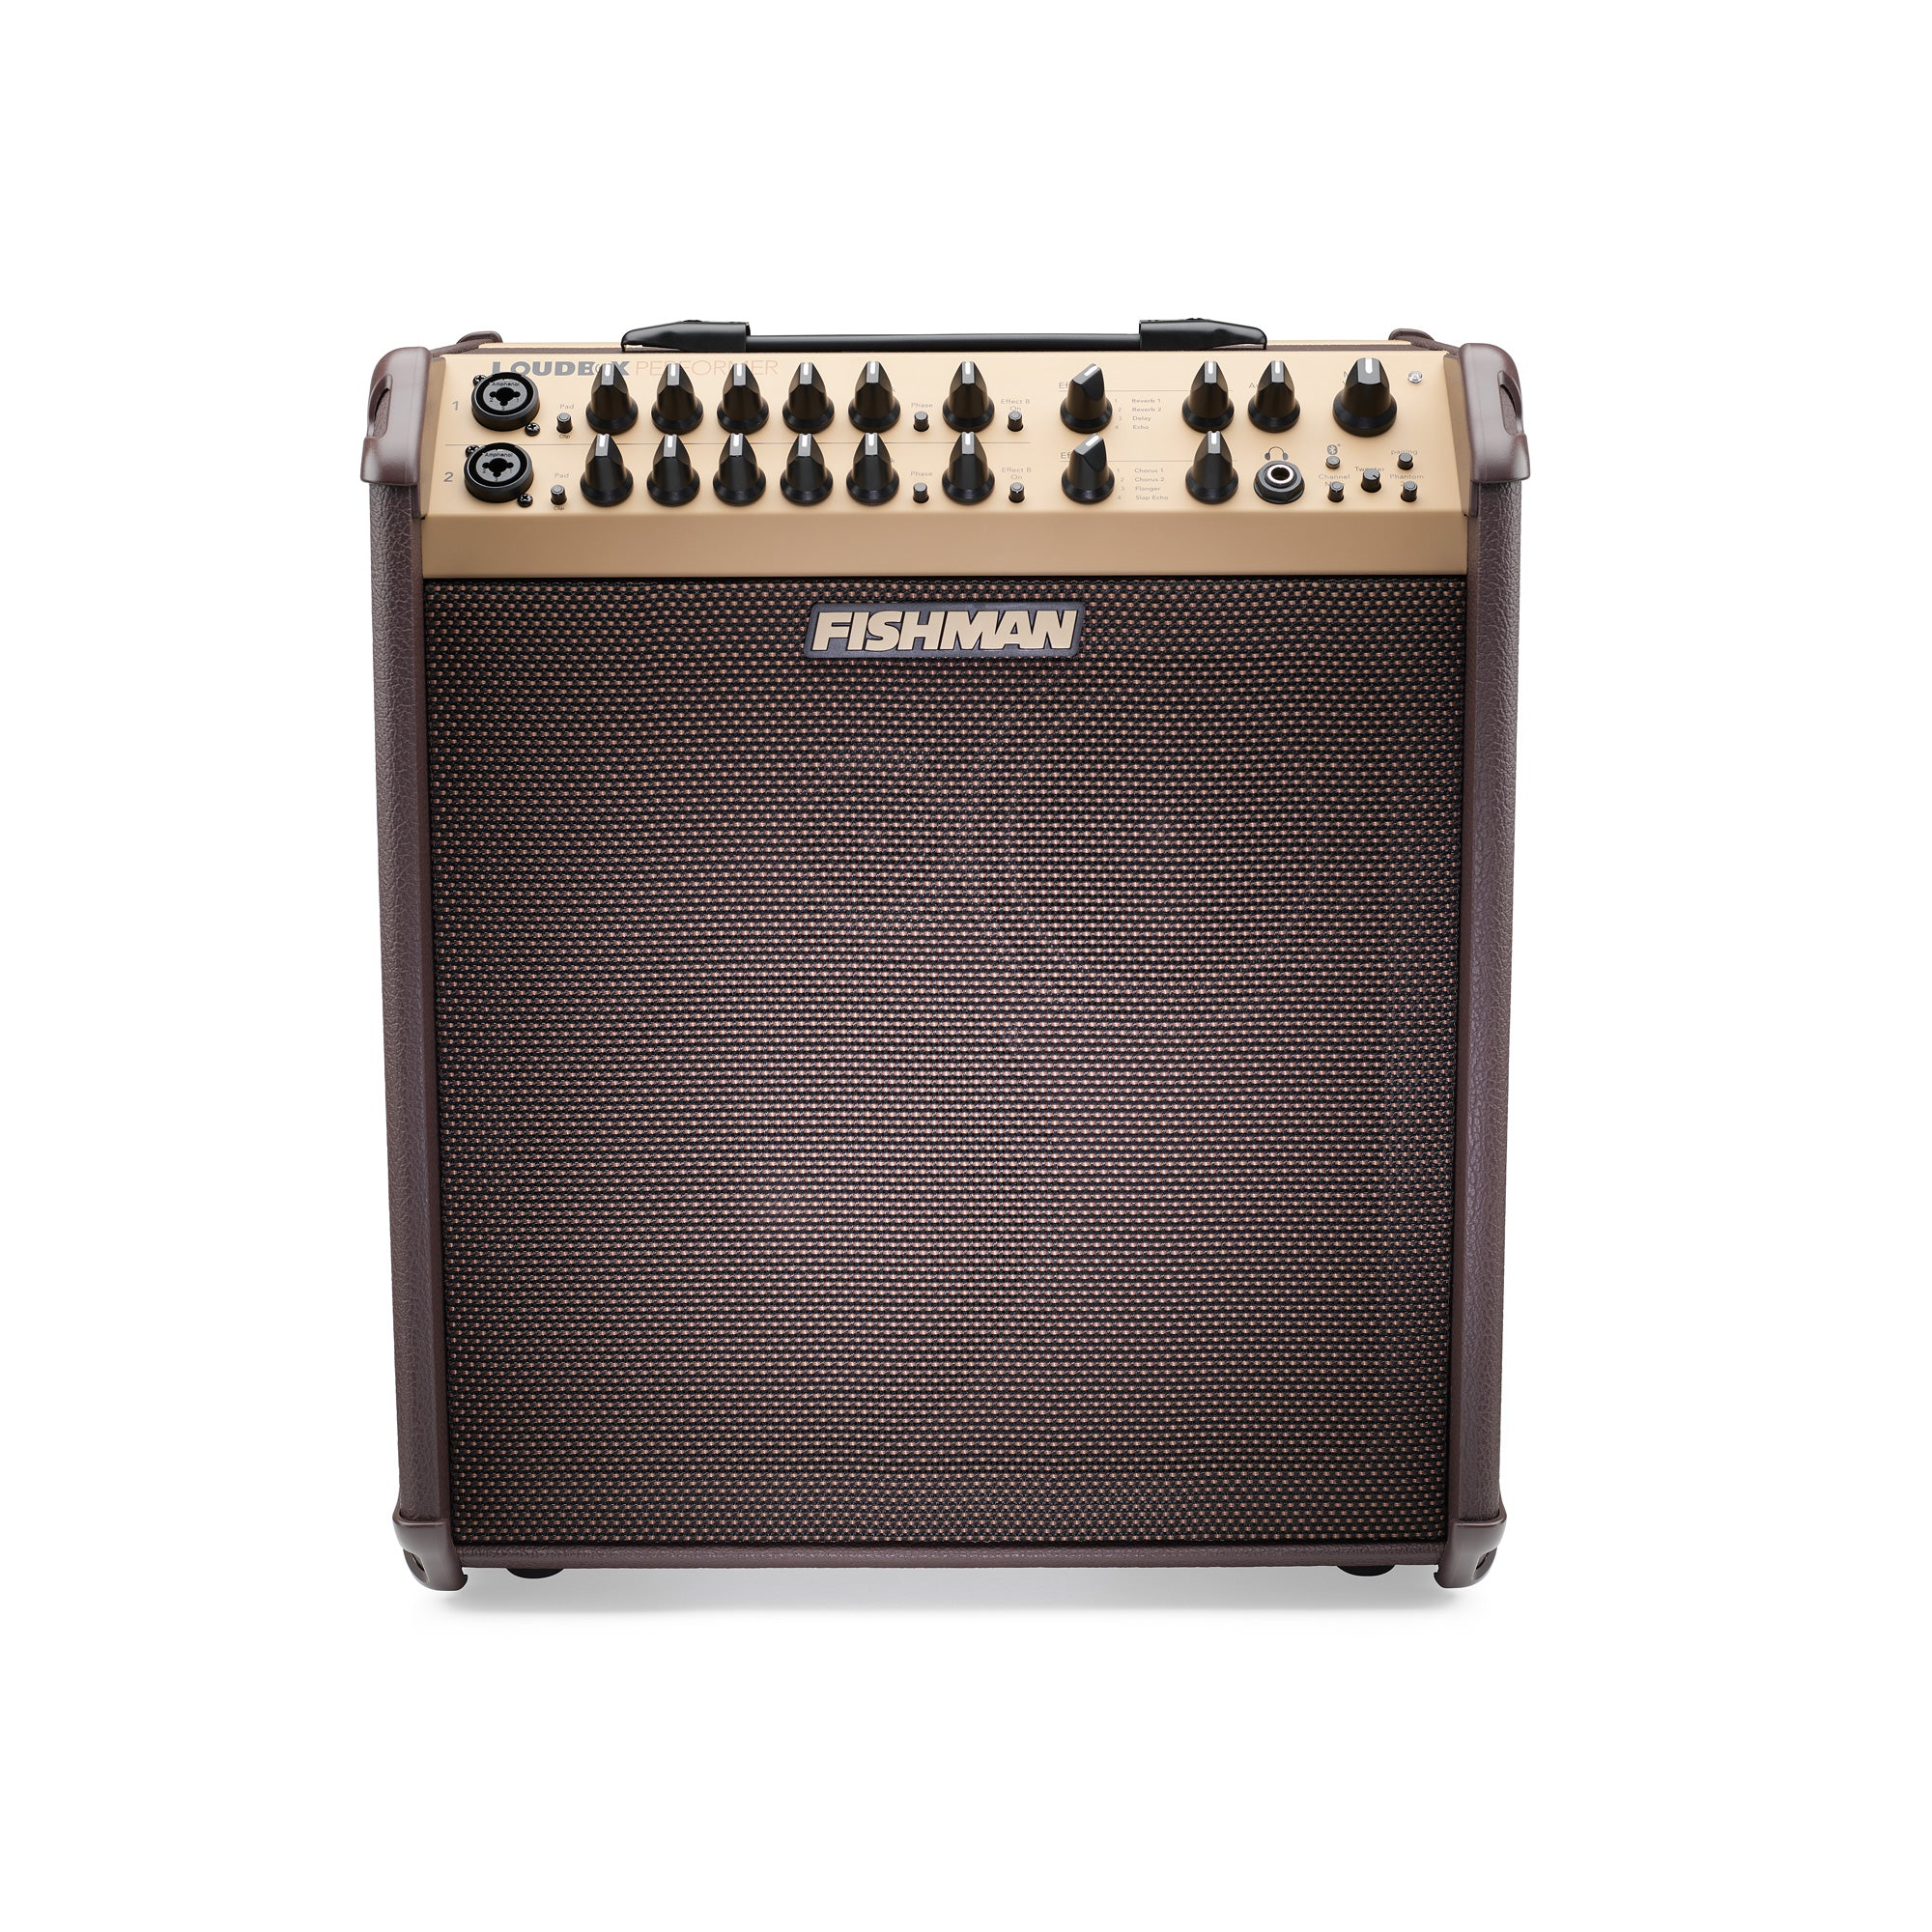 Fishman Loudbox Performer Amplifier